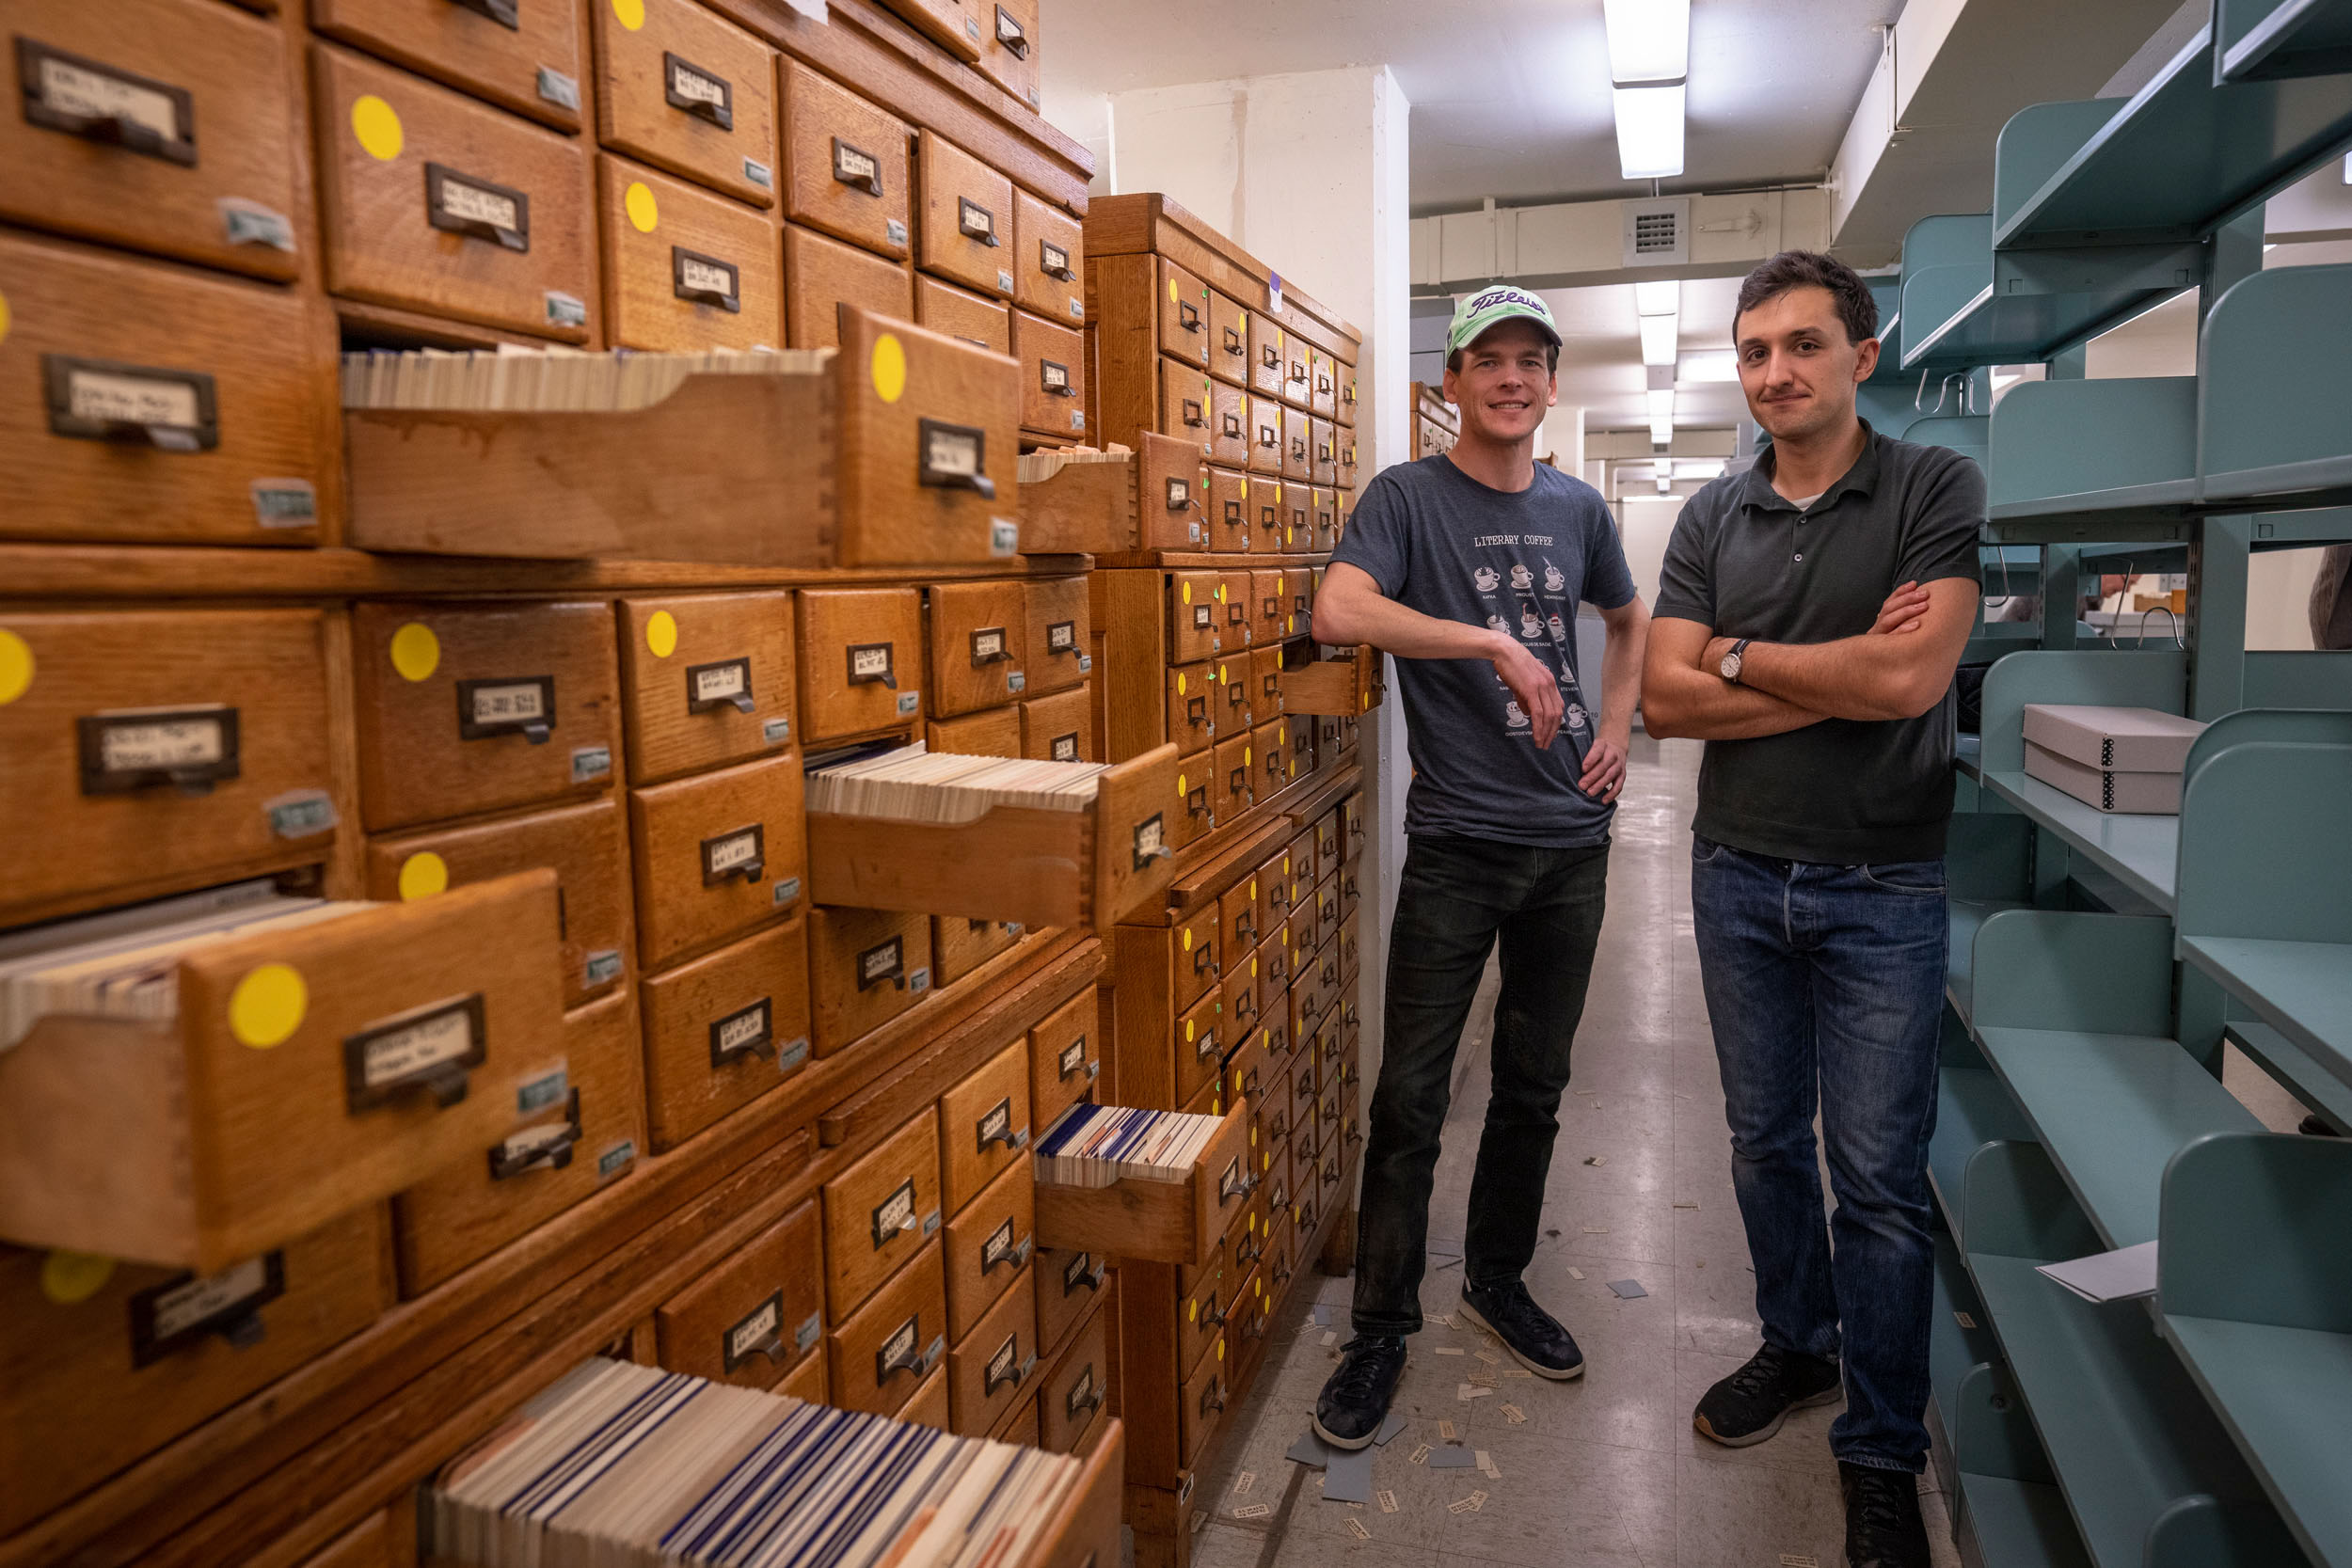 English graduate students Neal Curtis and Samuel Lemley in the Alderman card collection.